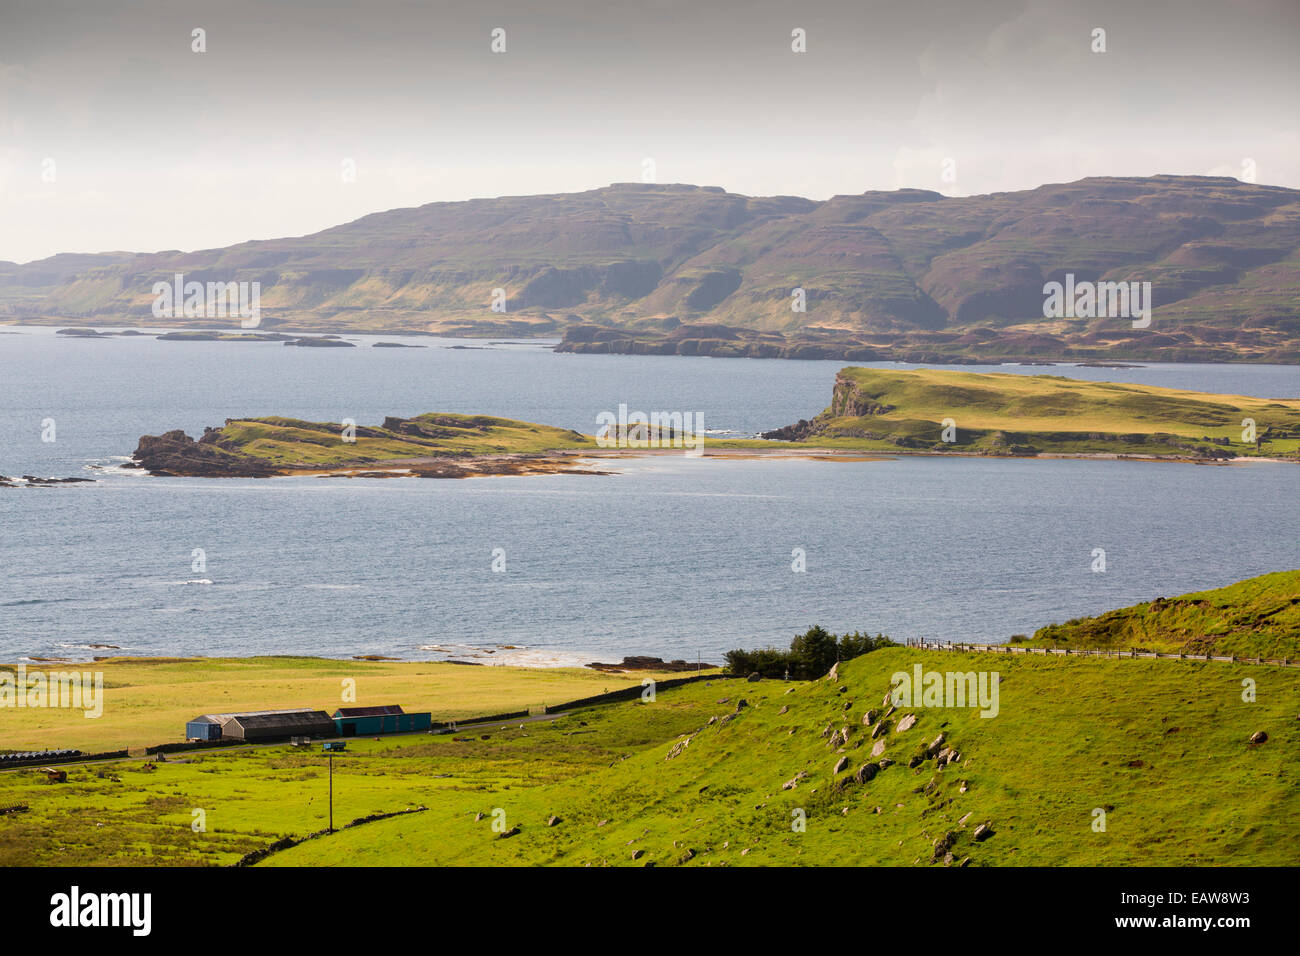 The island of Inch Kenneth in Loch Na Keal, Mull, Scotland, UK. Stock Photo